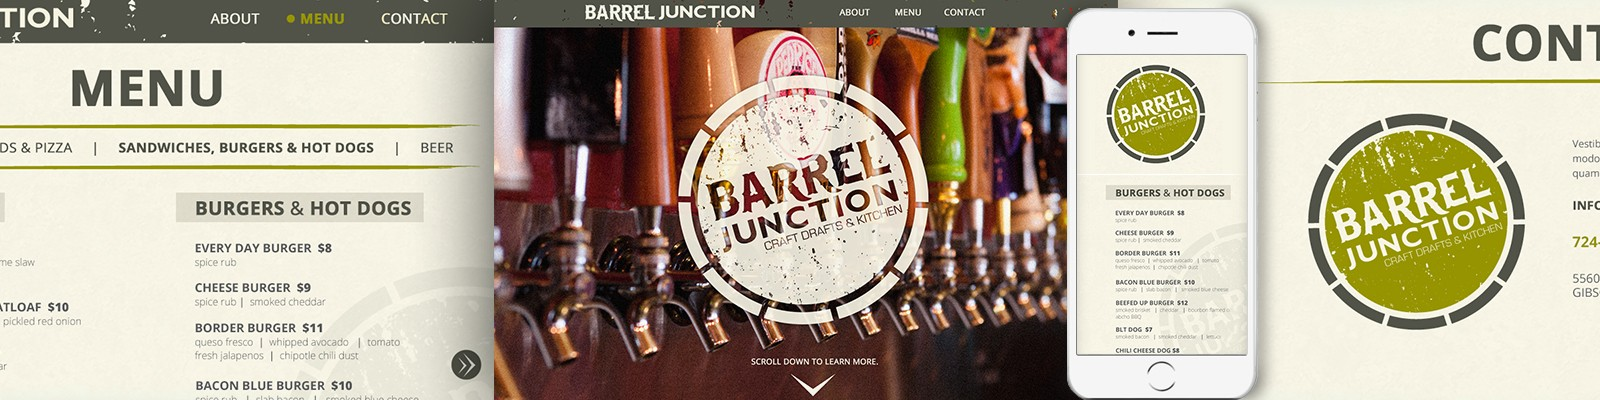 Barrel Junction